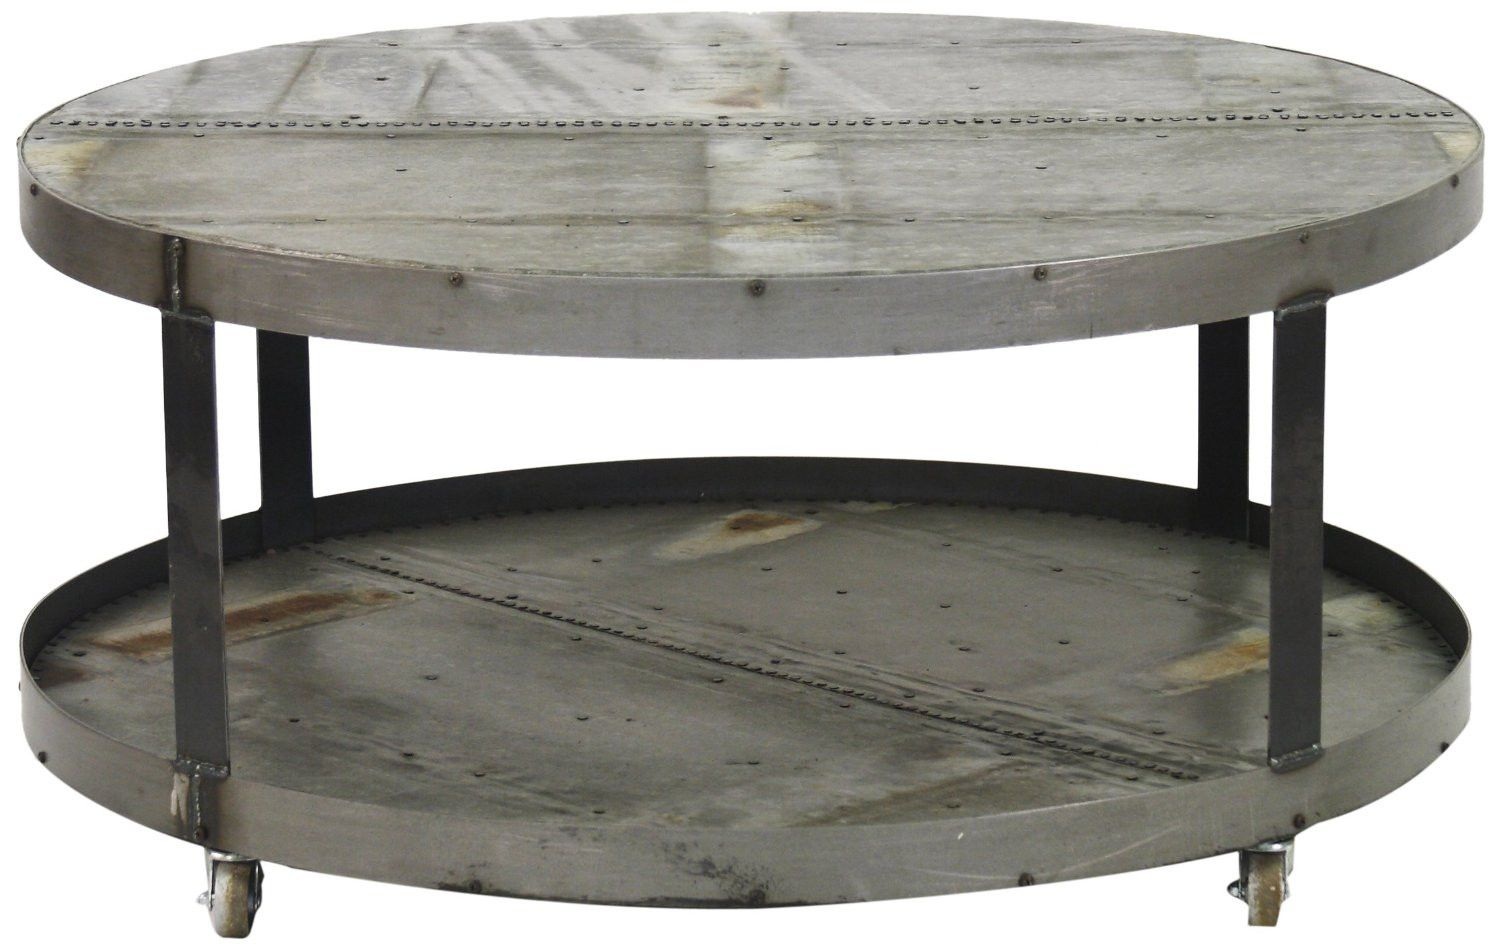 70 Metal Coffee Table Round Best Way To Paint Wood Furniture Check More At Http Www Buzzfol Round Coffee Table Decor Coffee Table With Chairs Coffee Table [ 949 x 1500 Pixel ]